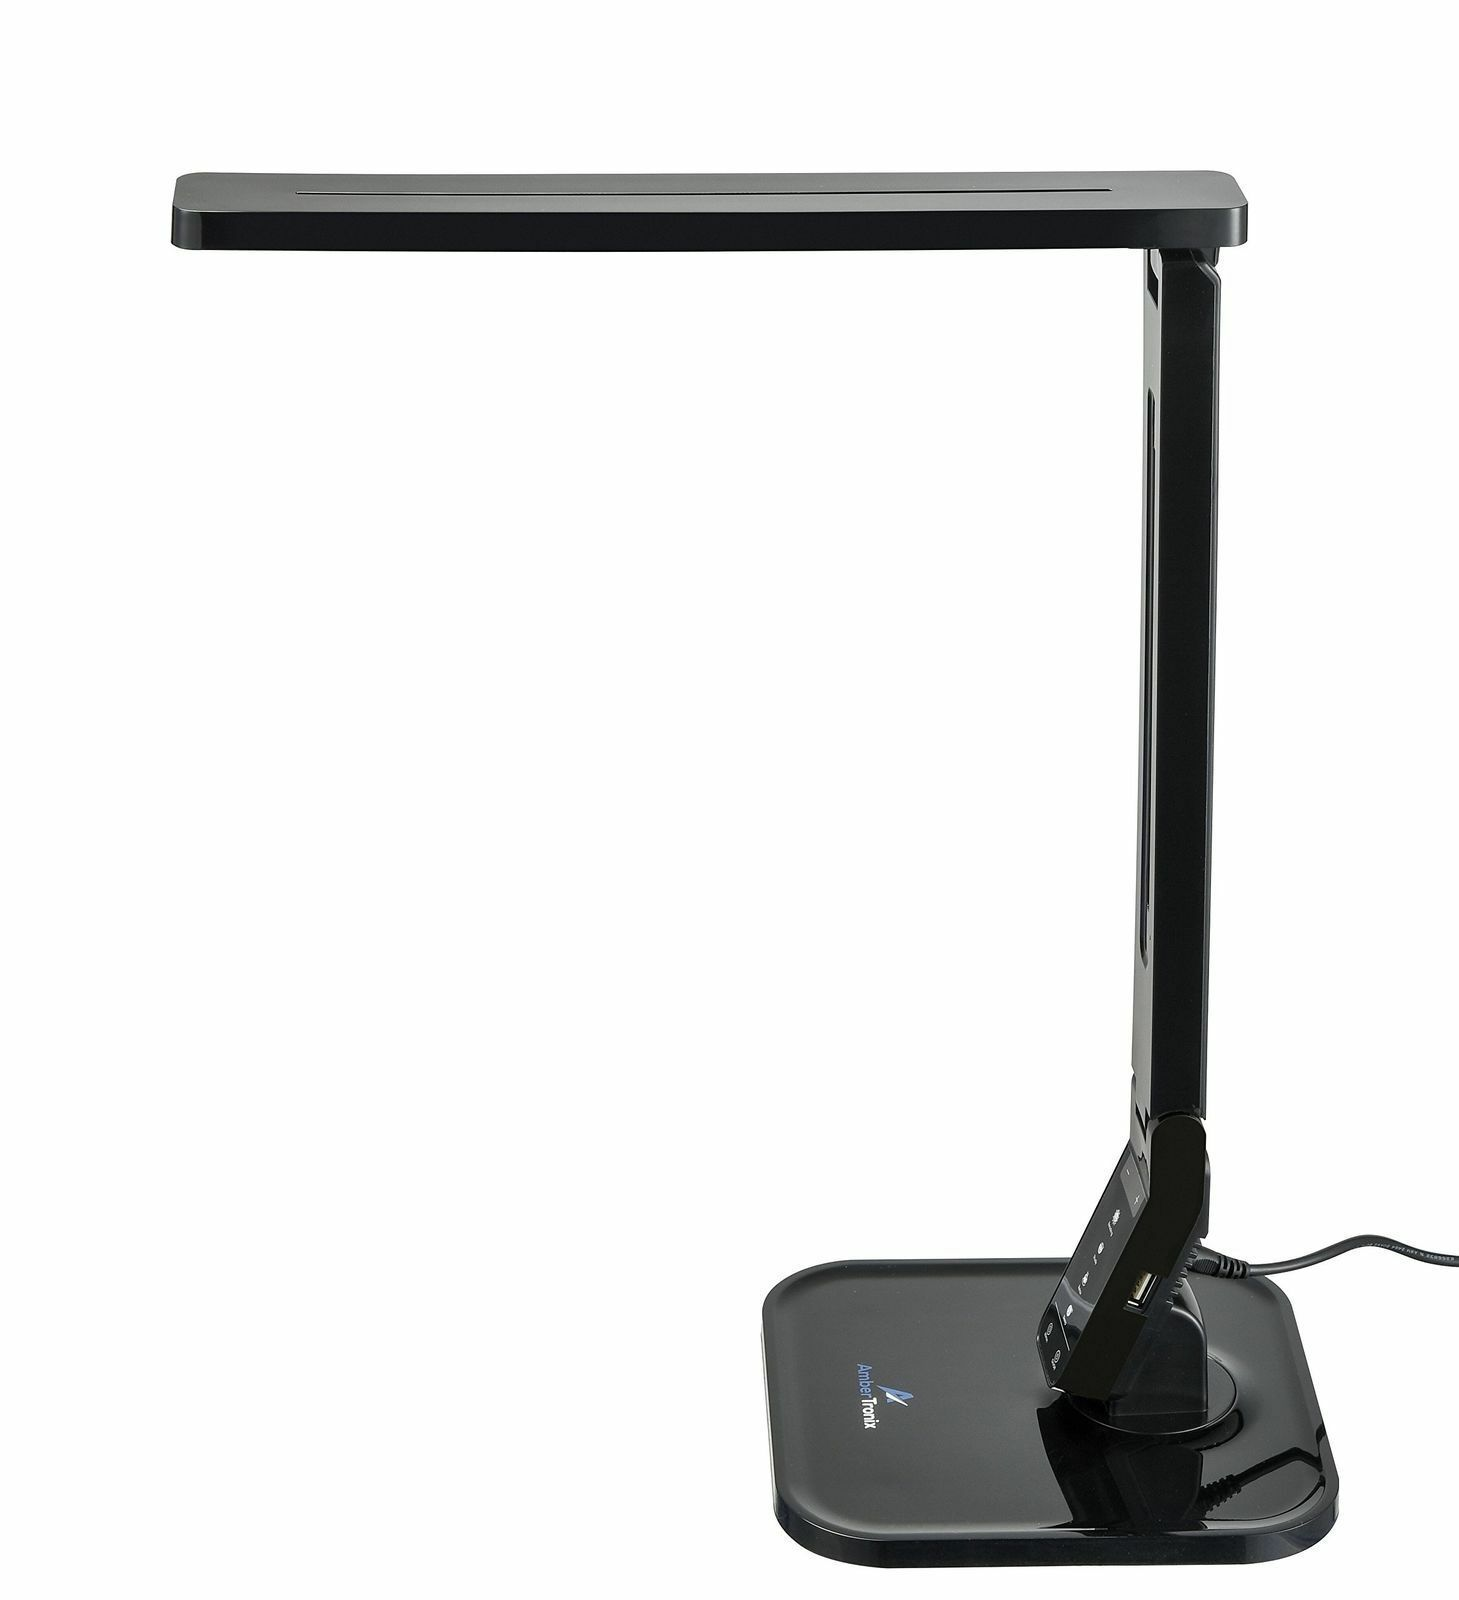 Black Ambertronix Led Desk Lamp Usb Phone Charge 4 Color Modes 5 Brightness Led Desk Lamp Black Desk Lamps Black Lamps